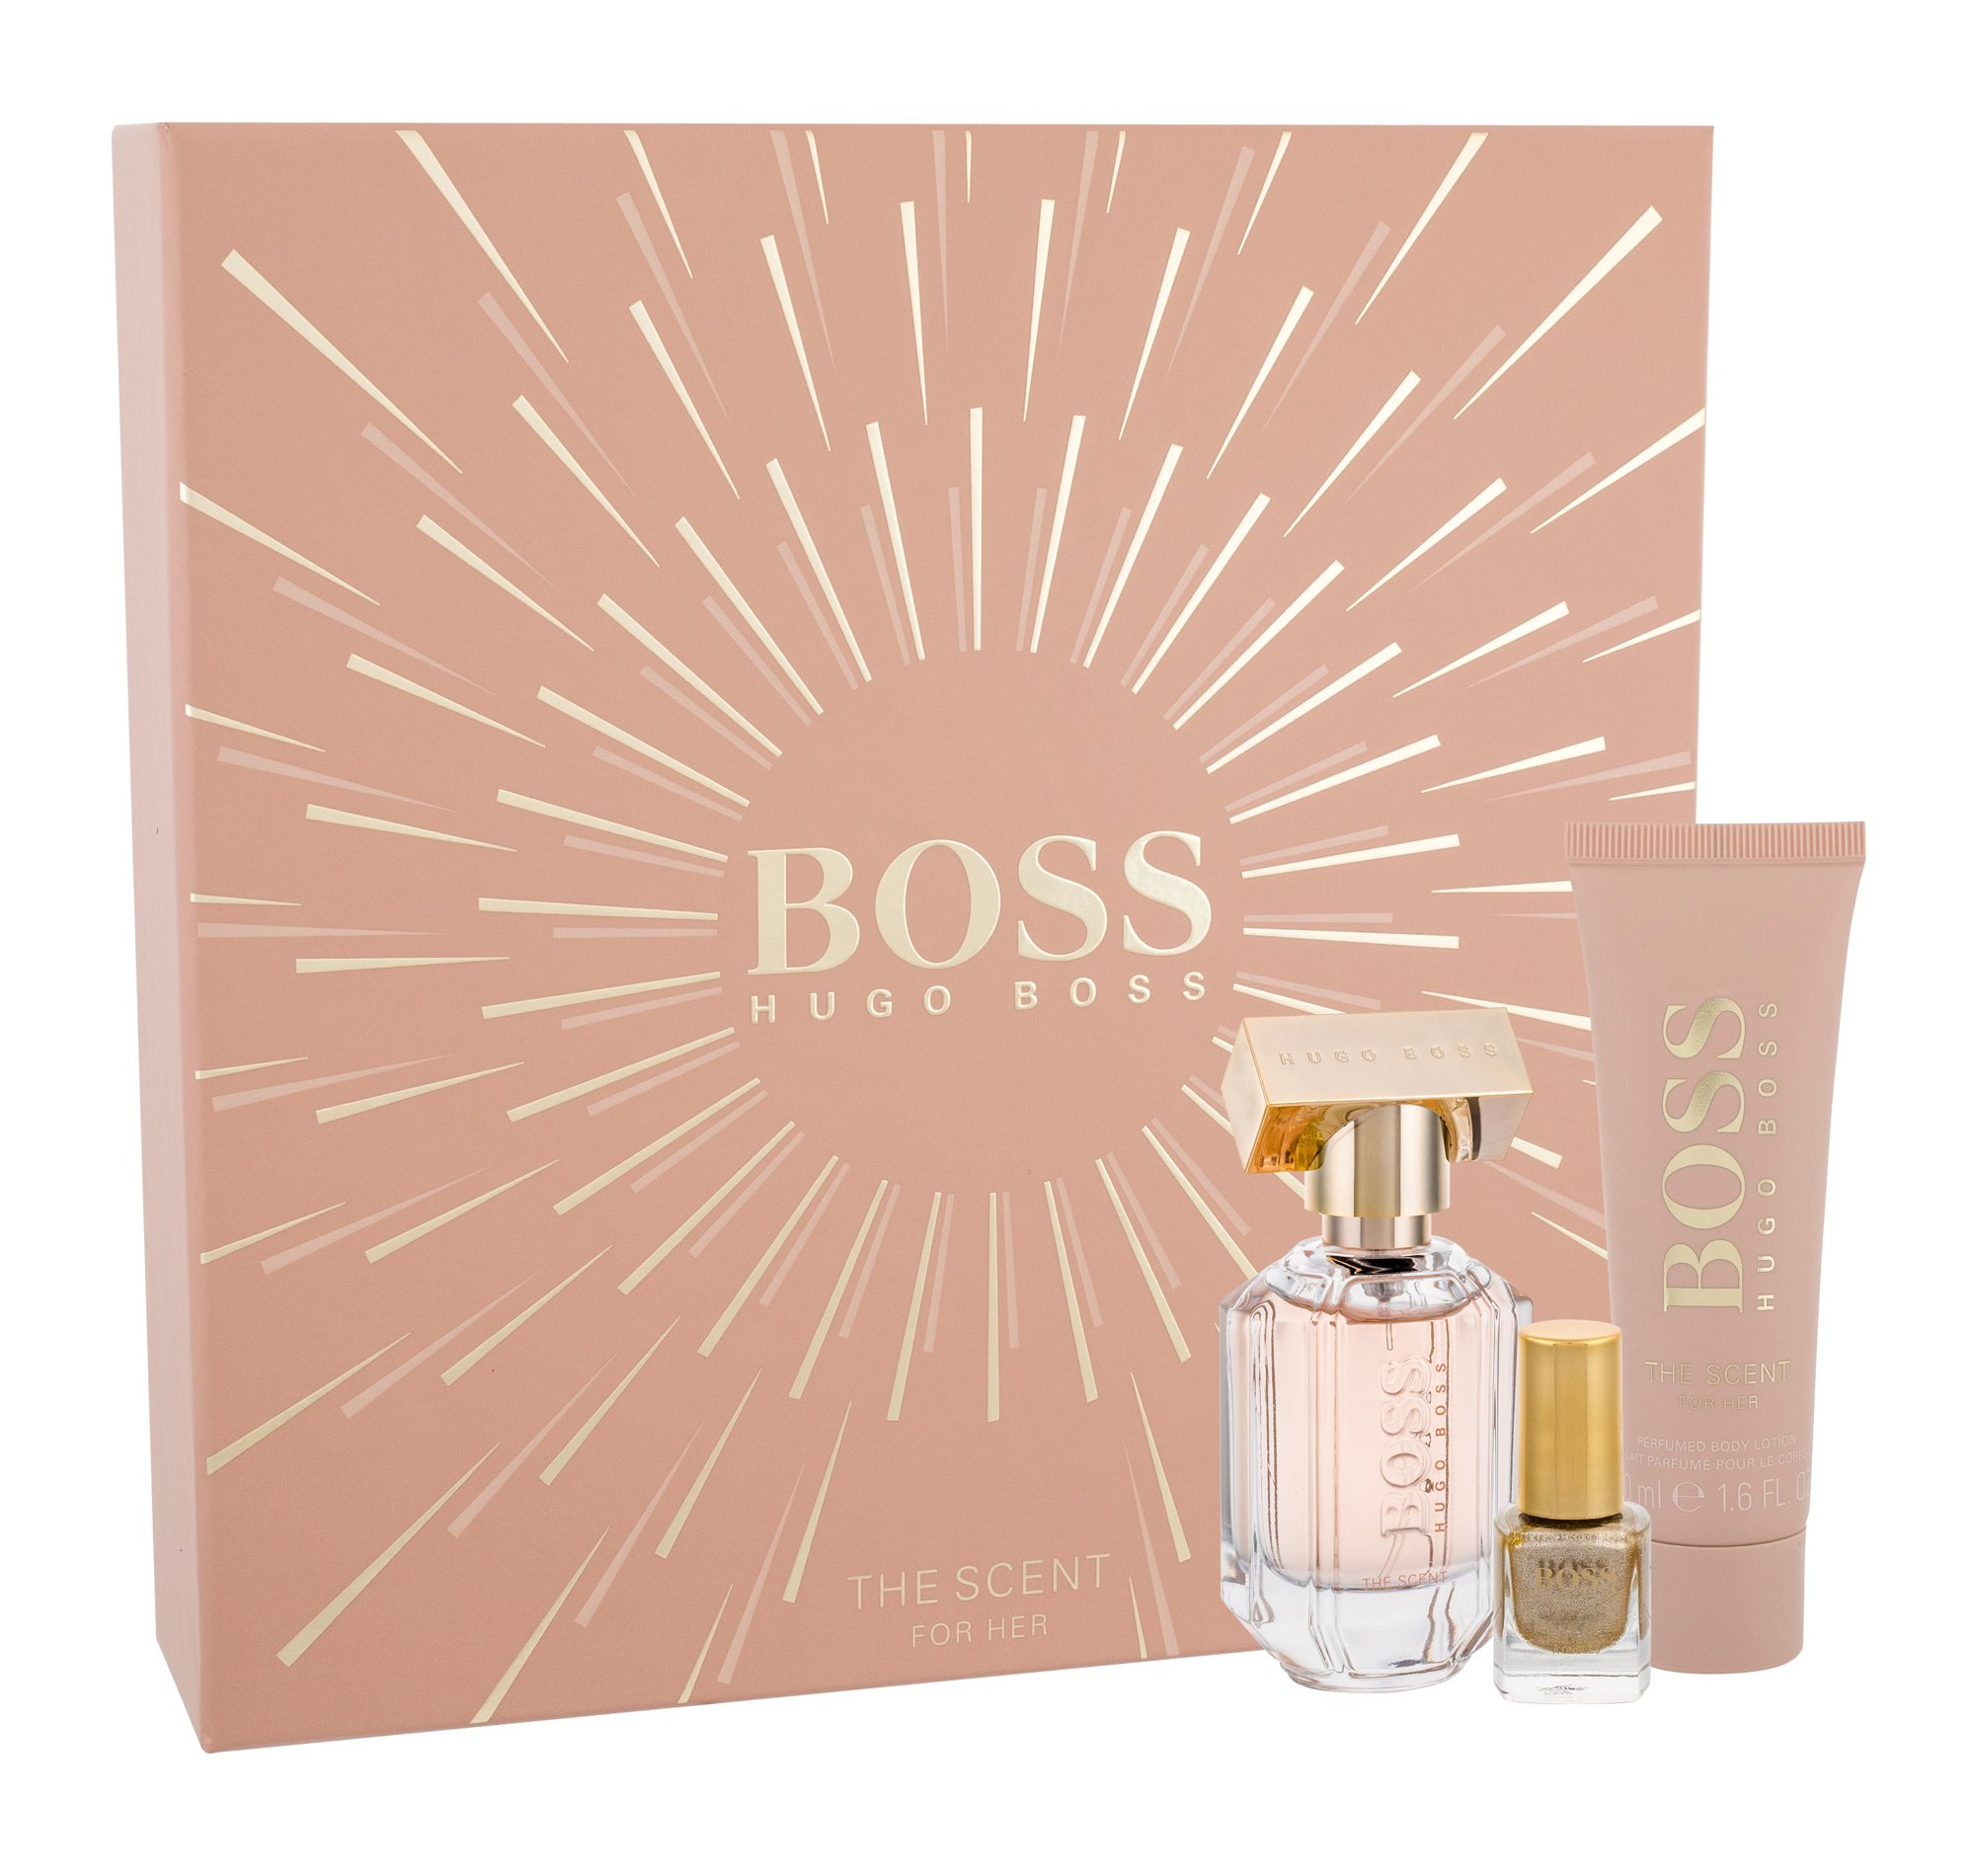 HUGO BOSS Boss The Scent For Her Eau de Parfum 30ml